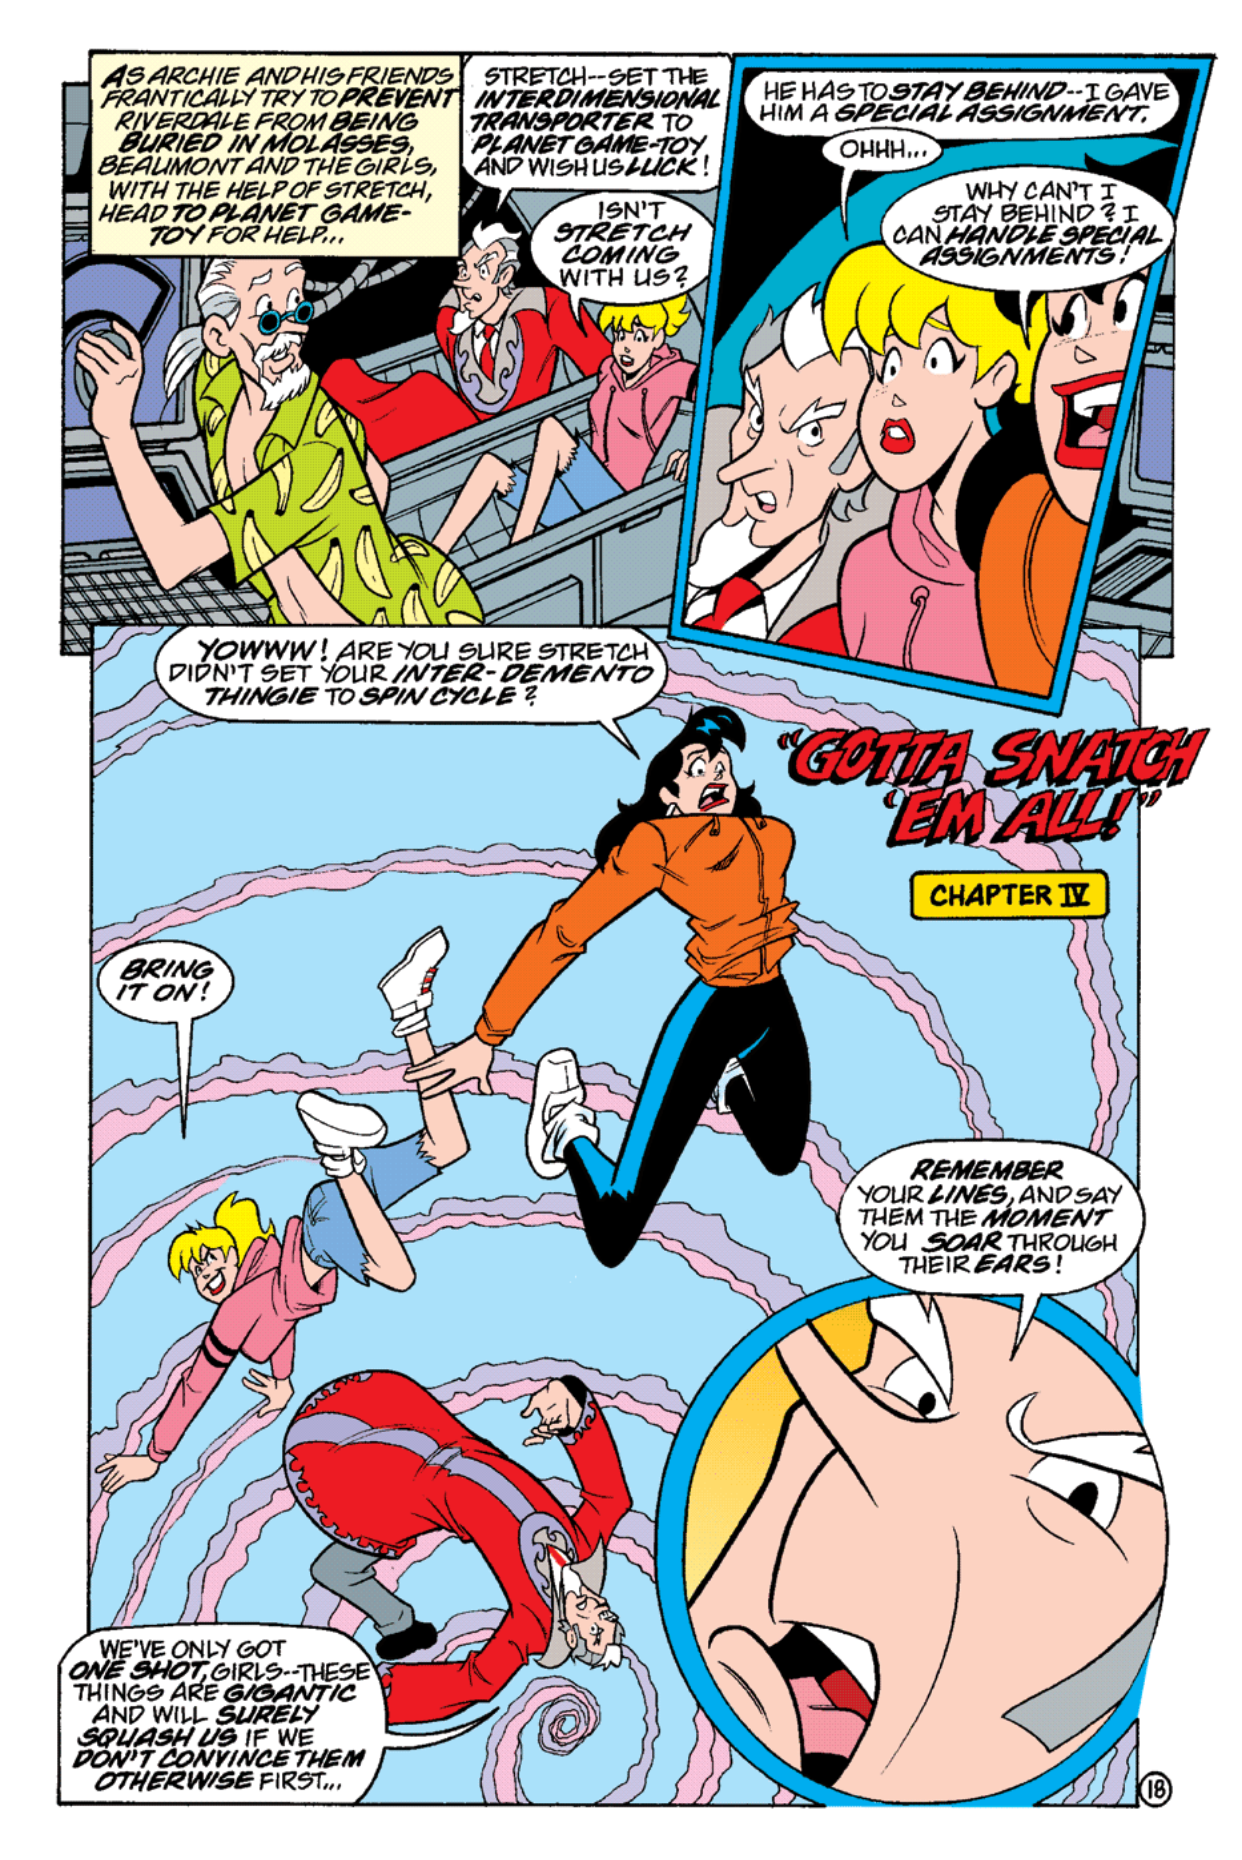 Read online Archie's Weird Mysteries comic -  Issue #17 - 20